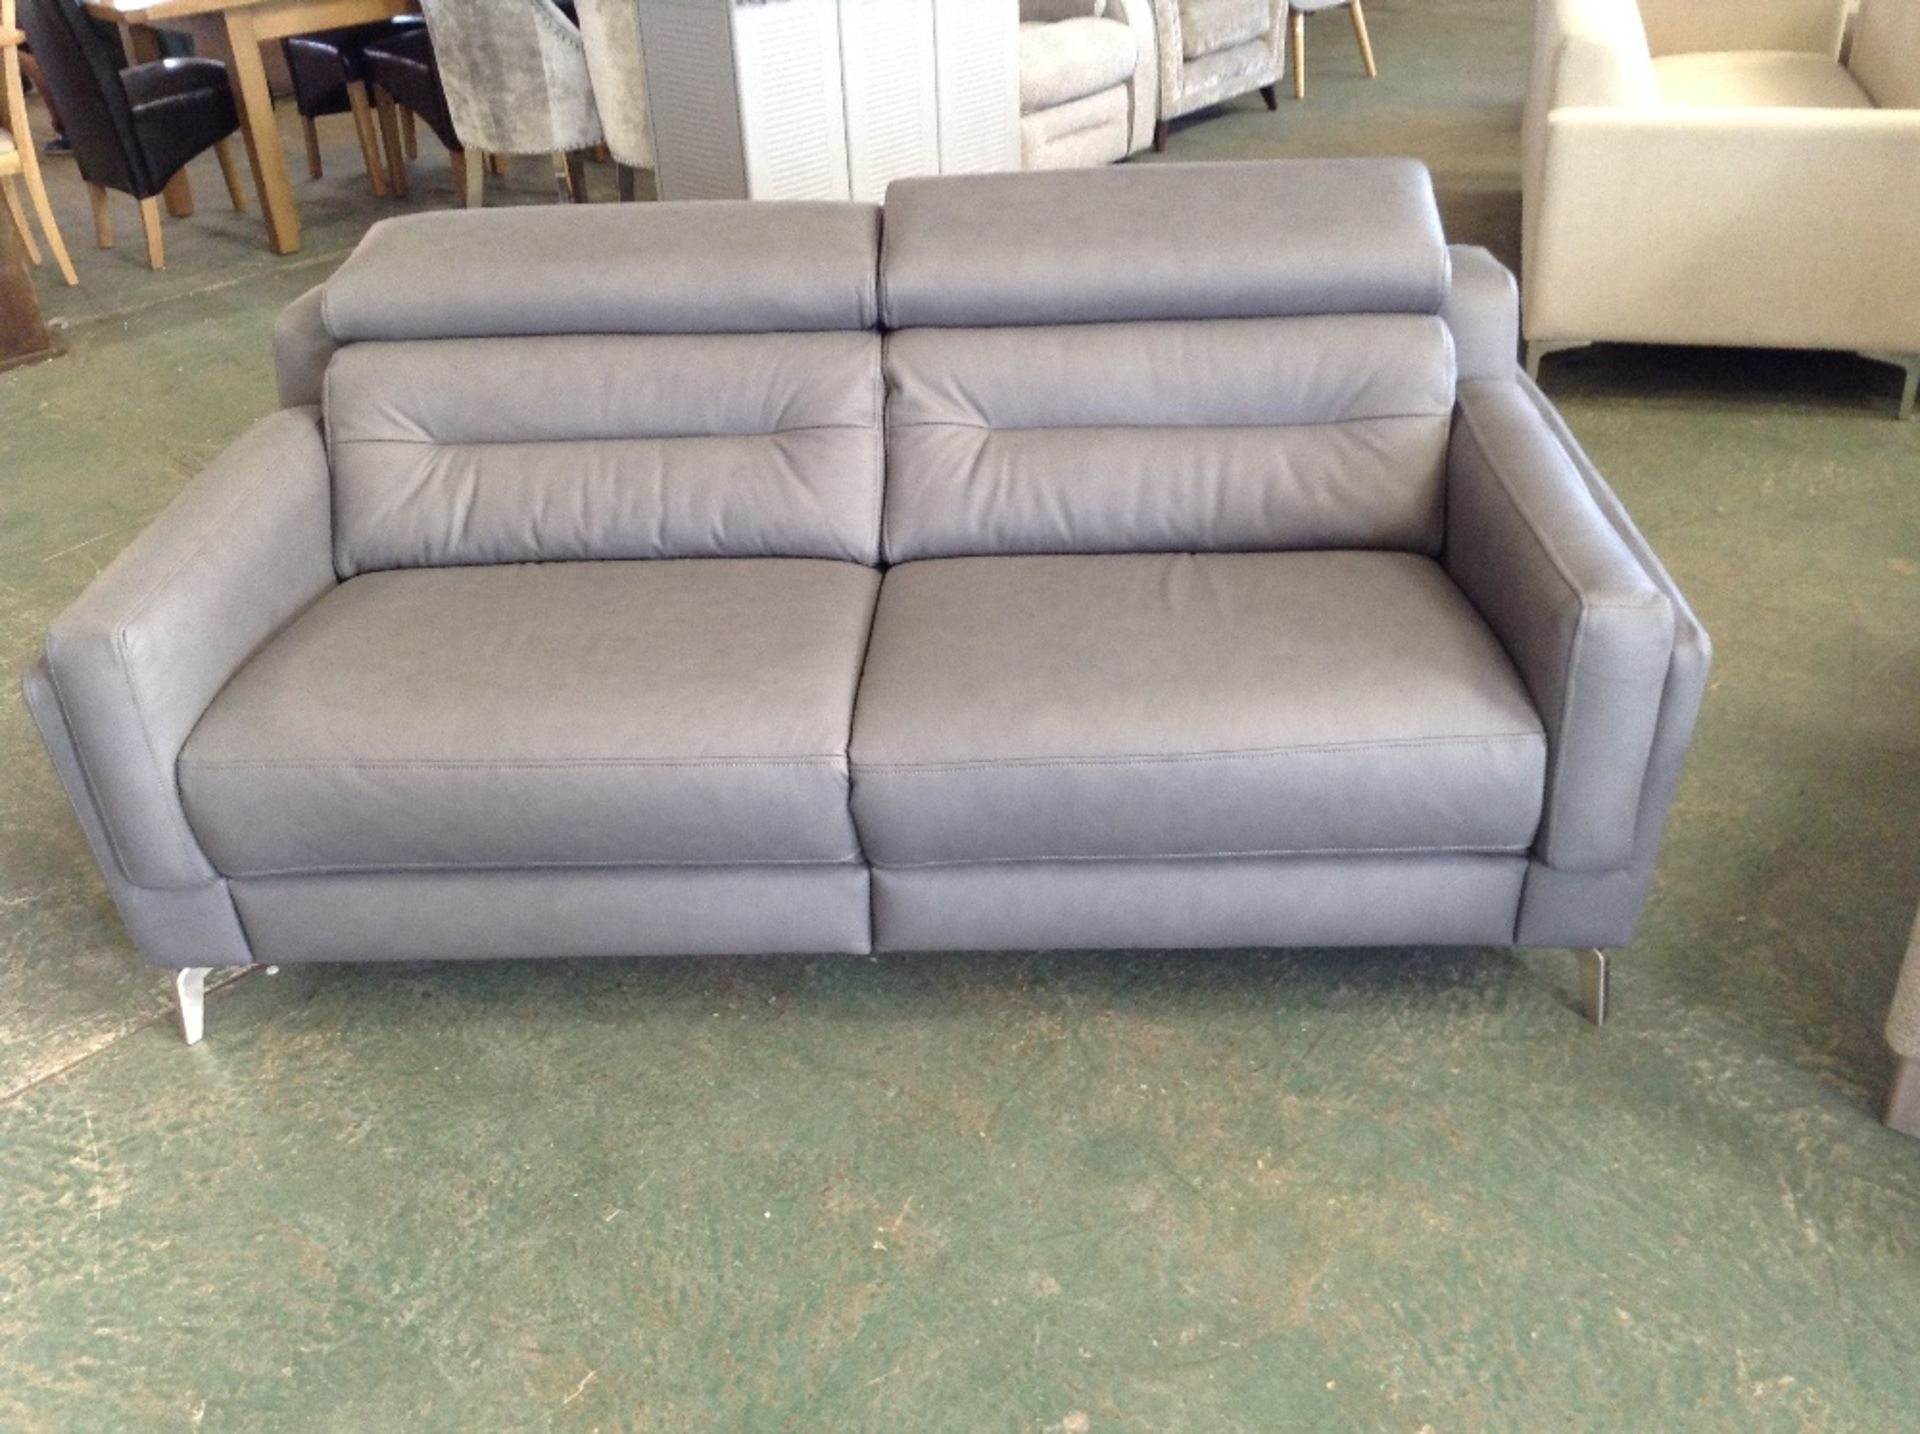 Lot 19 - GREY LEATHER 3 SEATER SOFA WITH ADJUSTABLE HEADRES